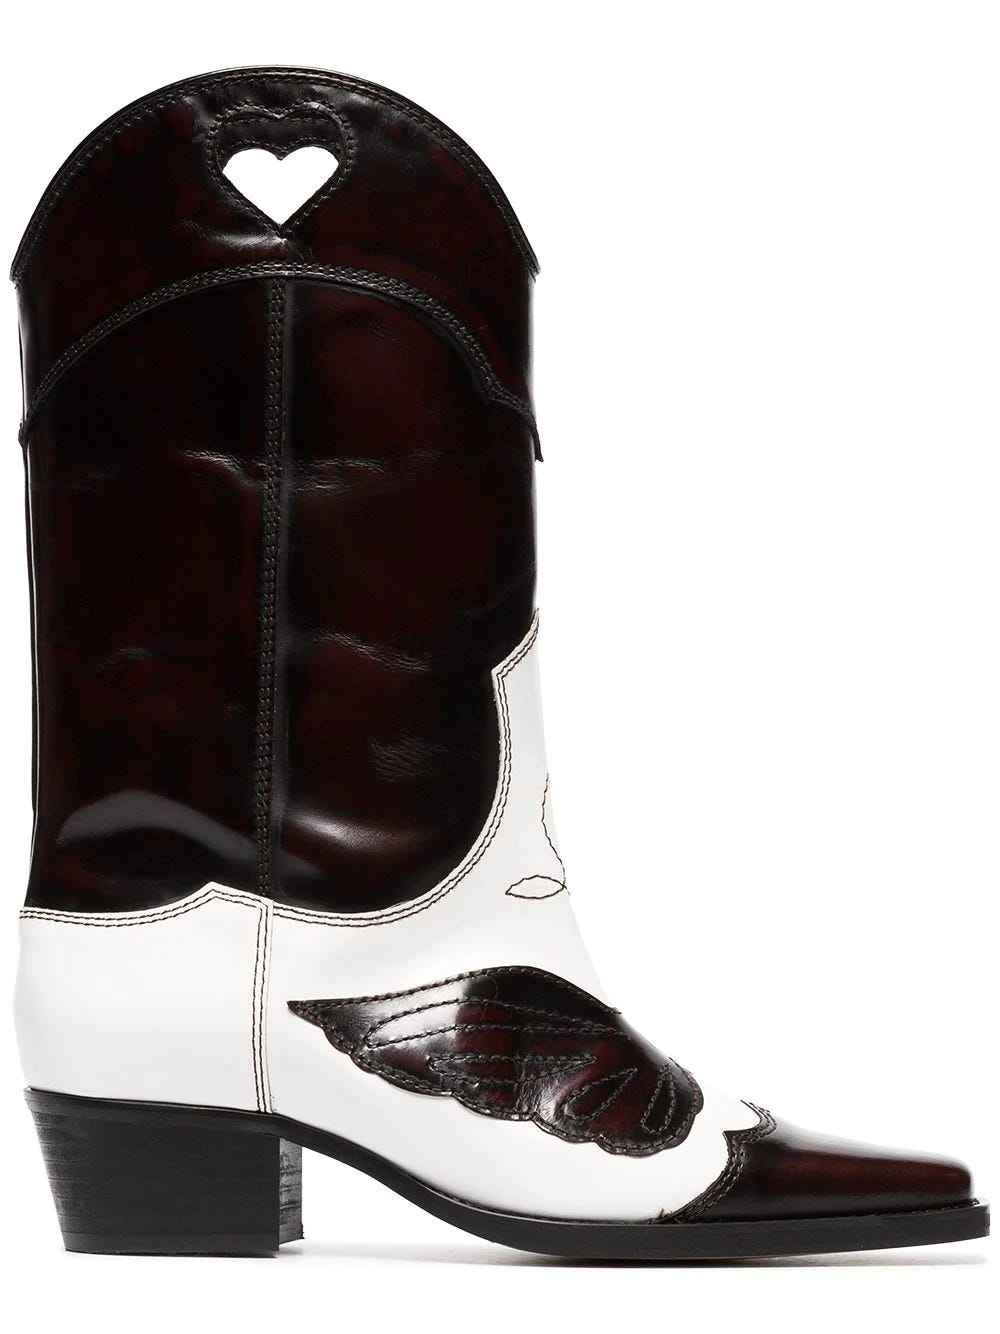 Best Womens Trends Boots 2019 Boot Styles Winter 80wymNOvn